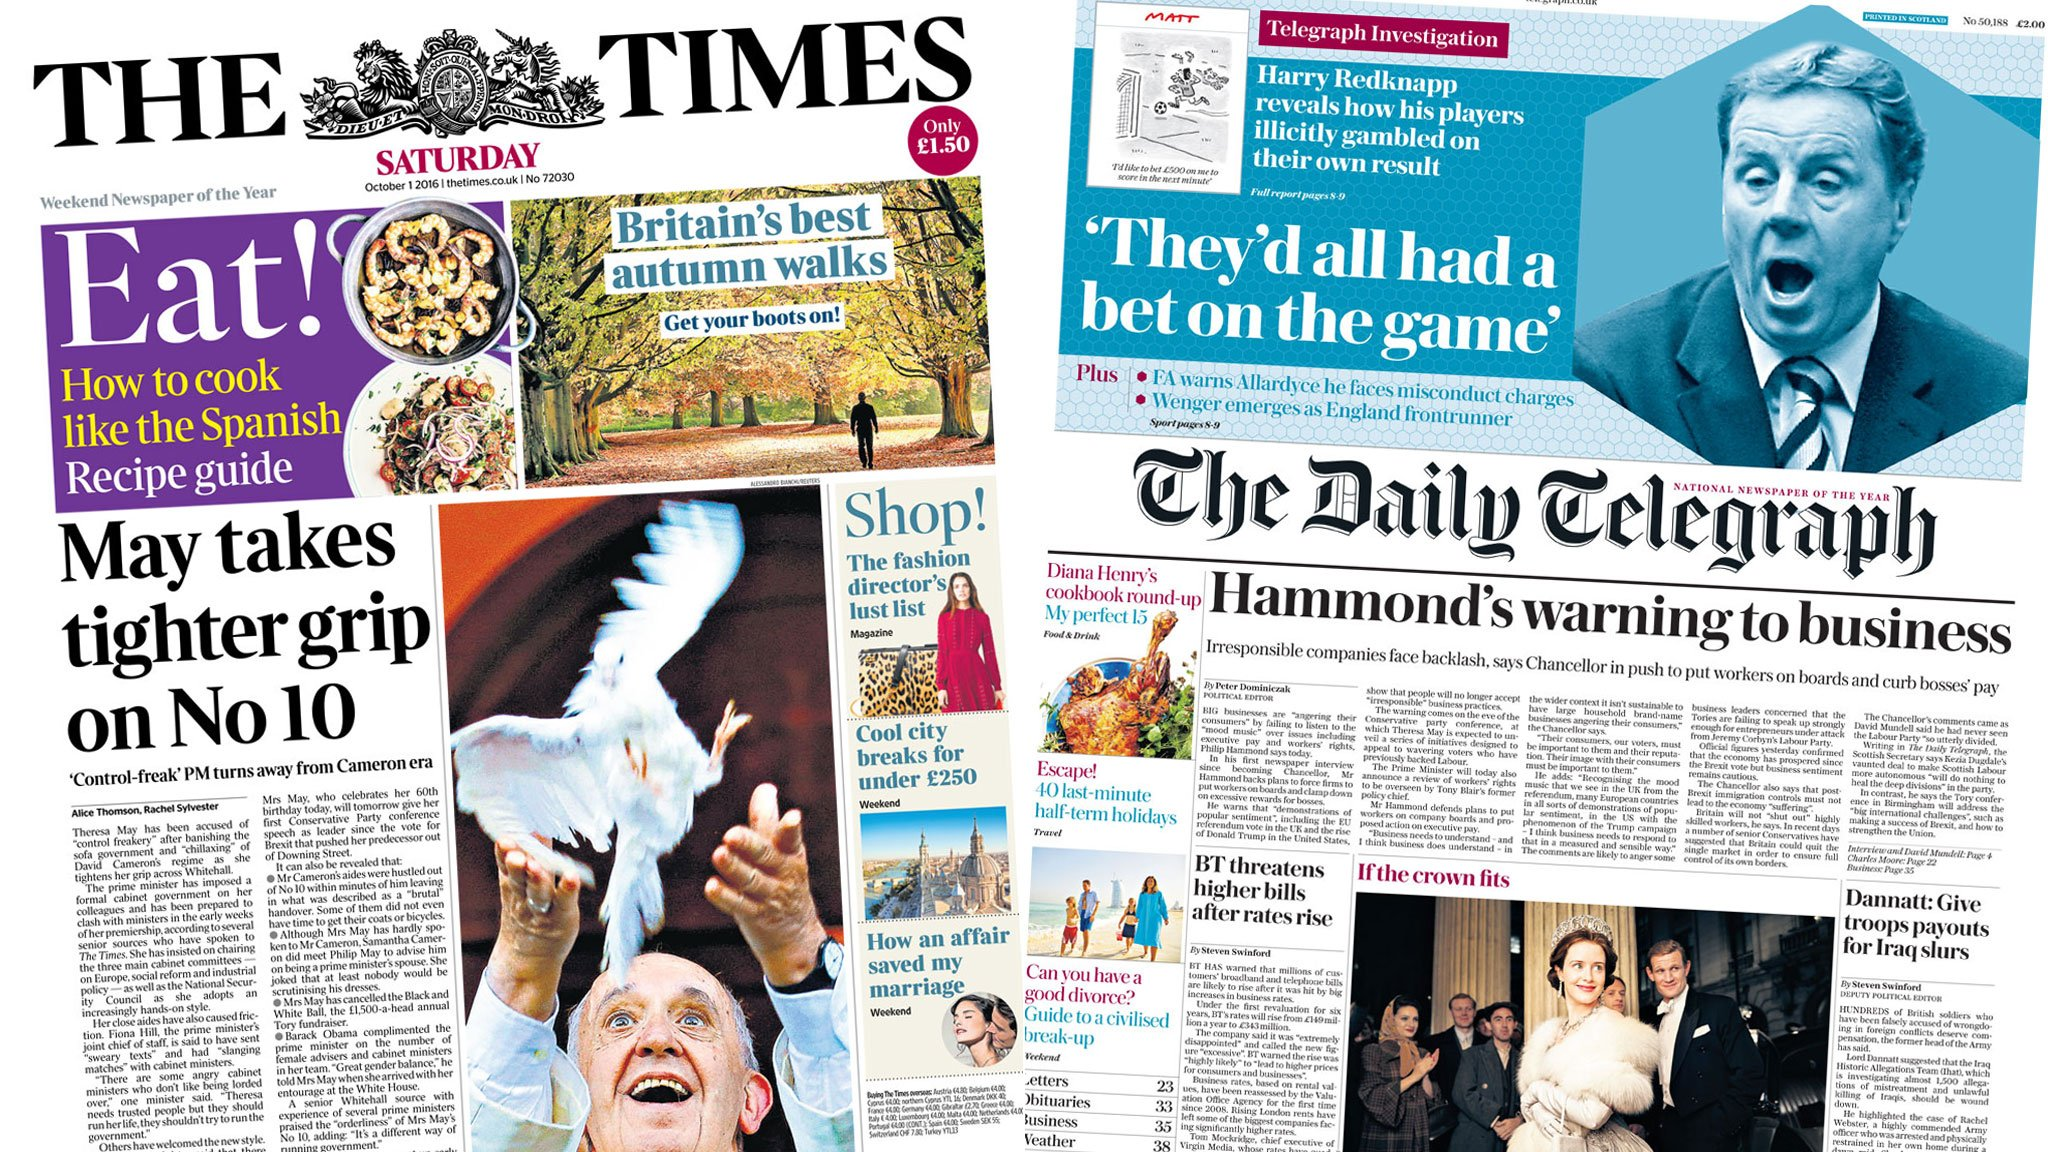 Newspaper headlines: May's grip on No 10, and saving builders from Brexit